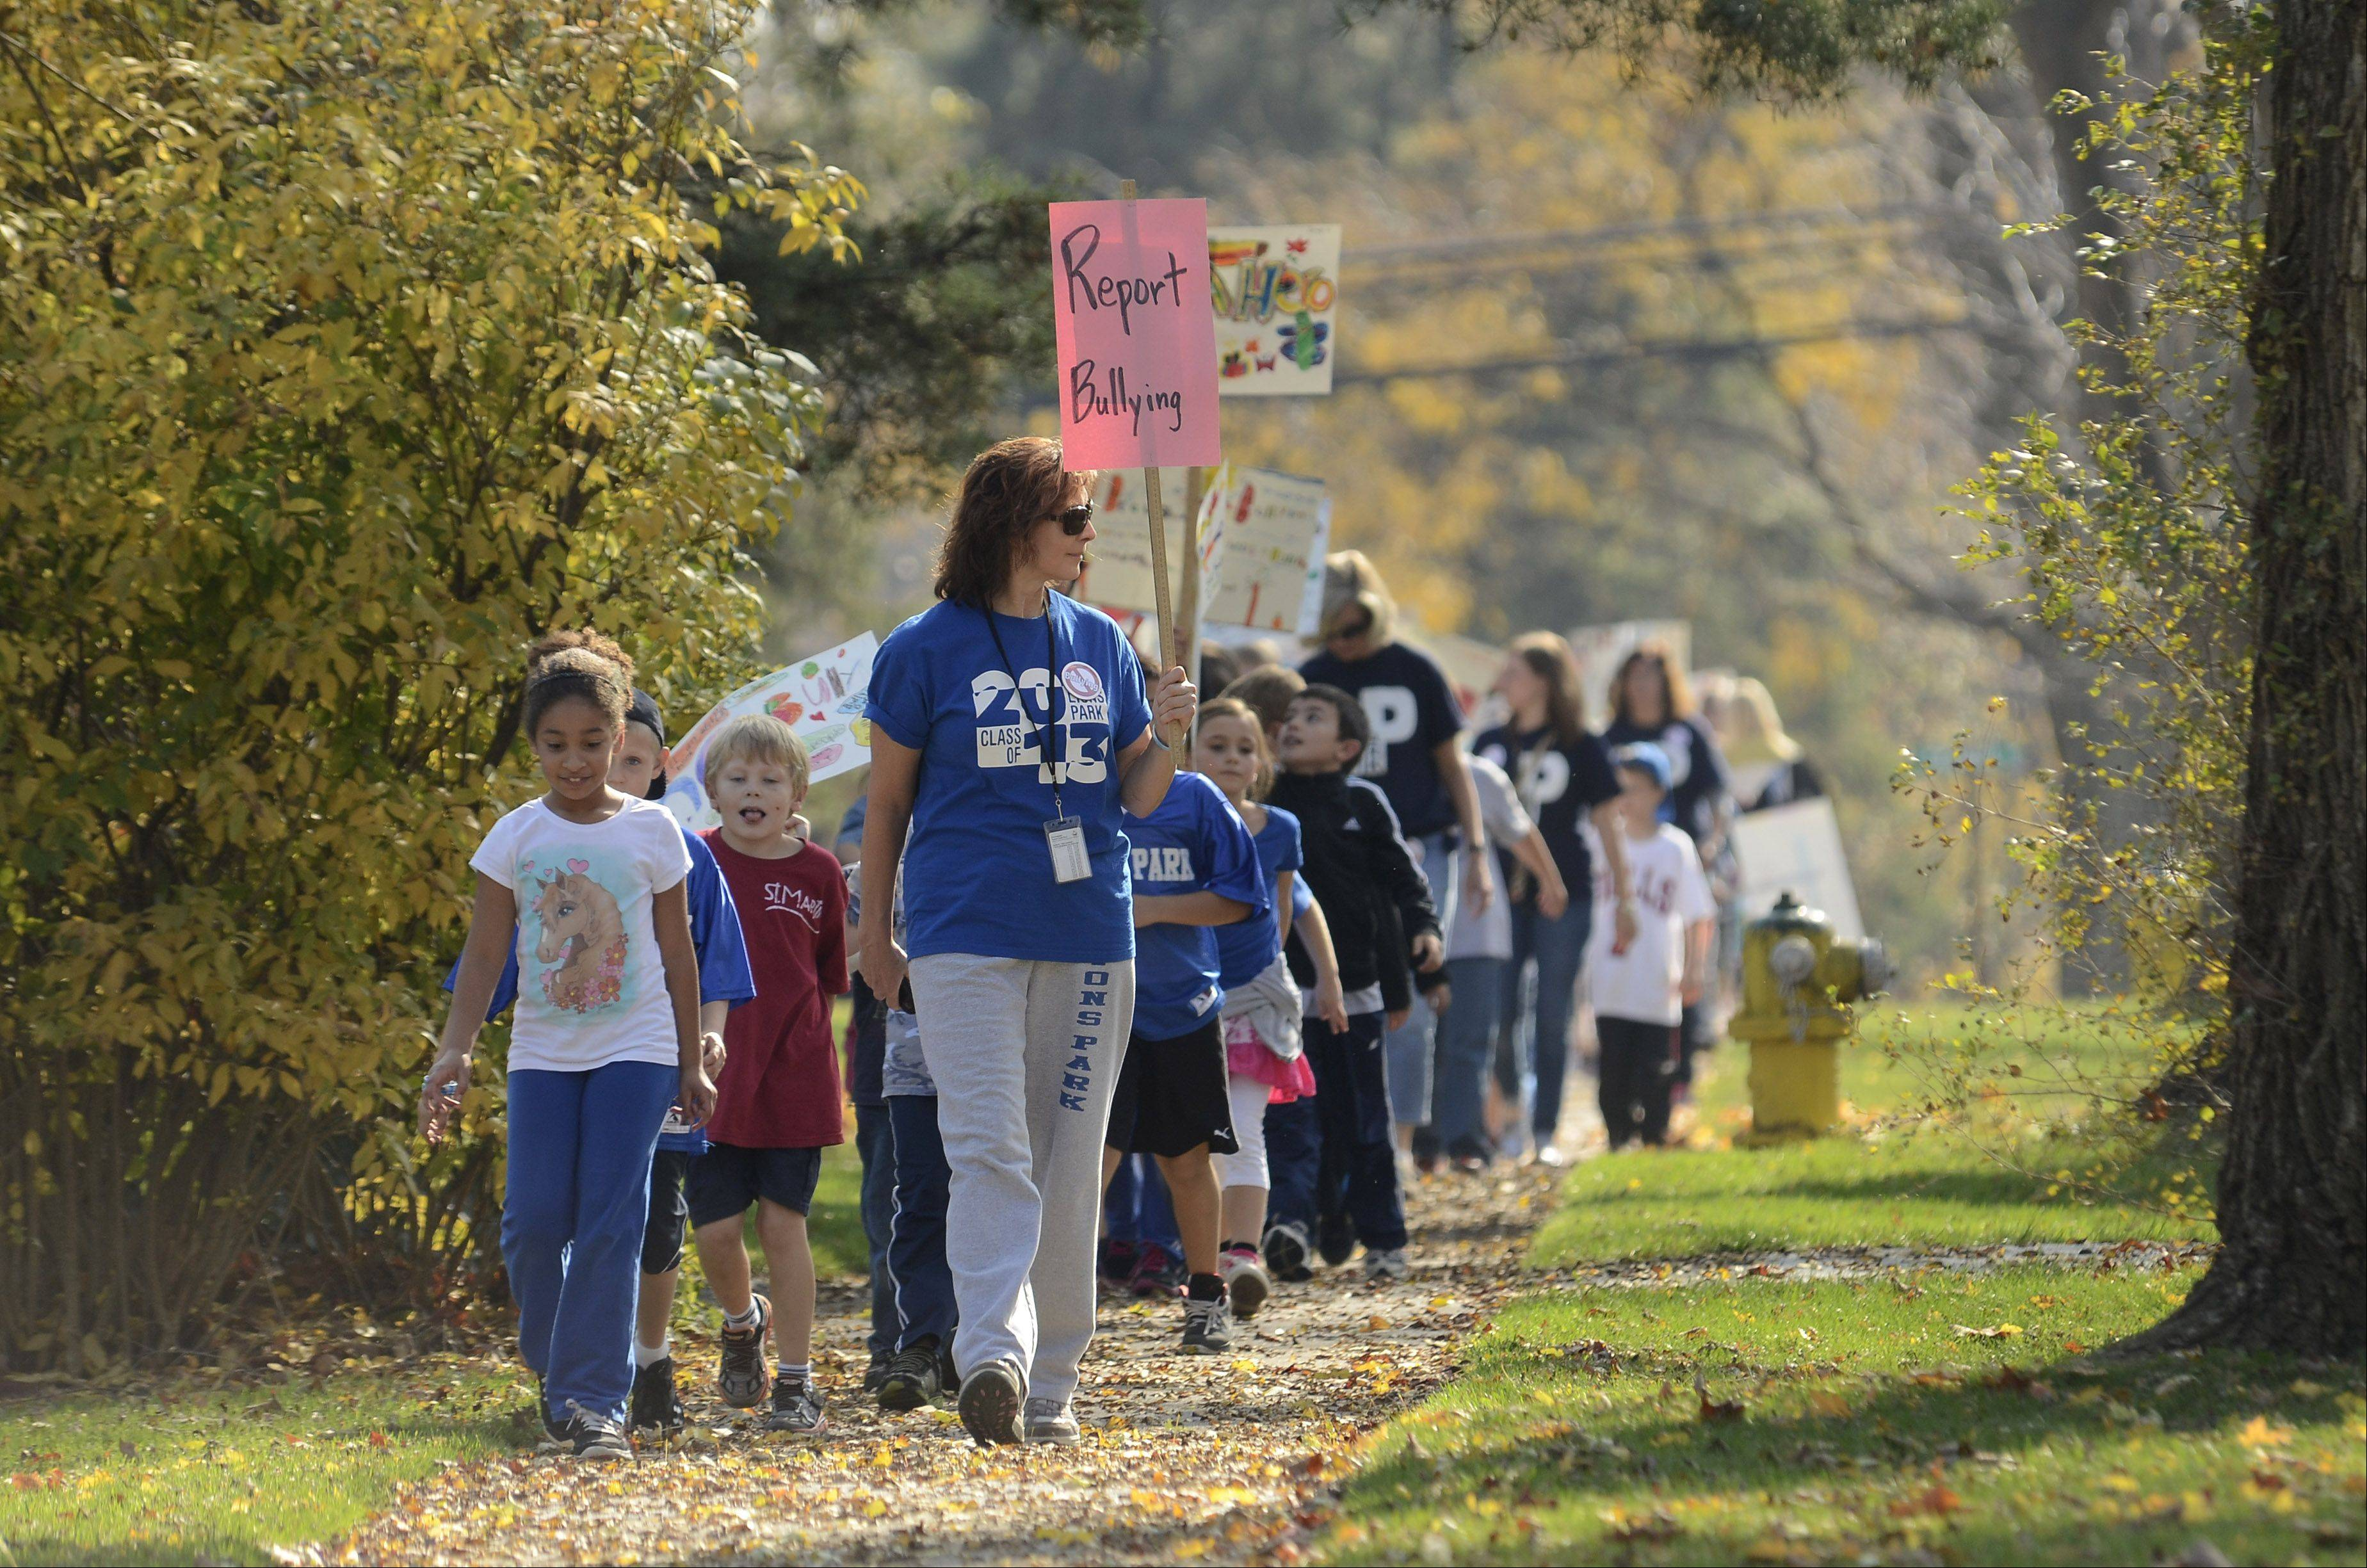 Mount Prospect School District 57 is holding its first Stand Up to Bullying Week. As part of the week�s events, students and staff members of Lions Park School marched from the school to downtown Mount Prospect.